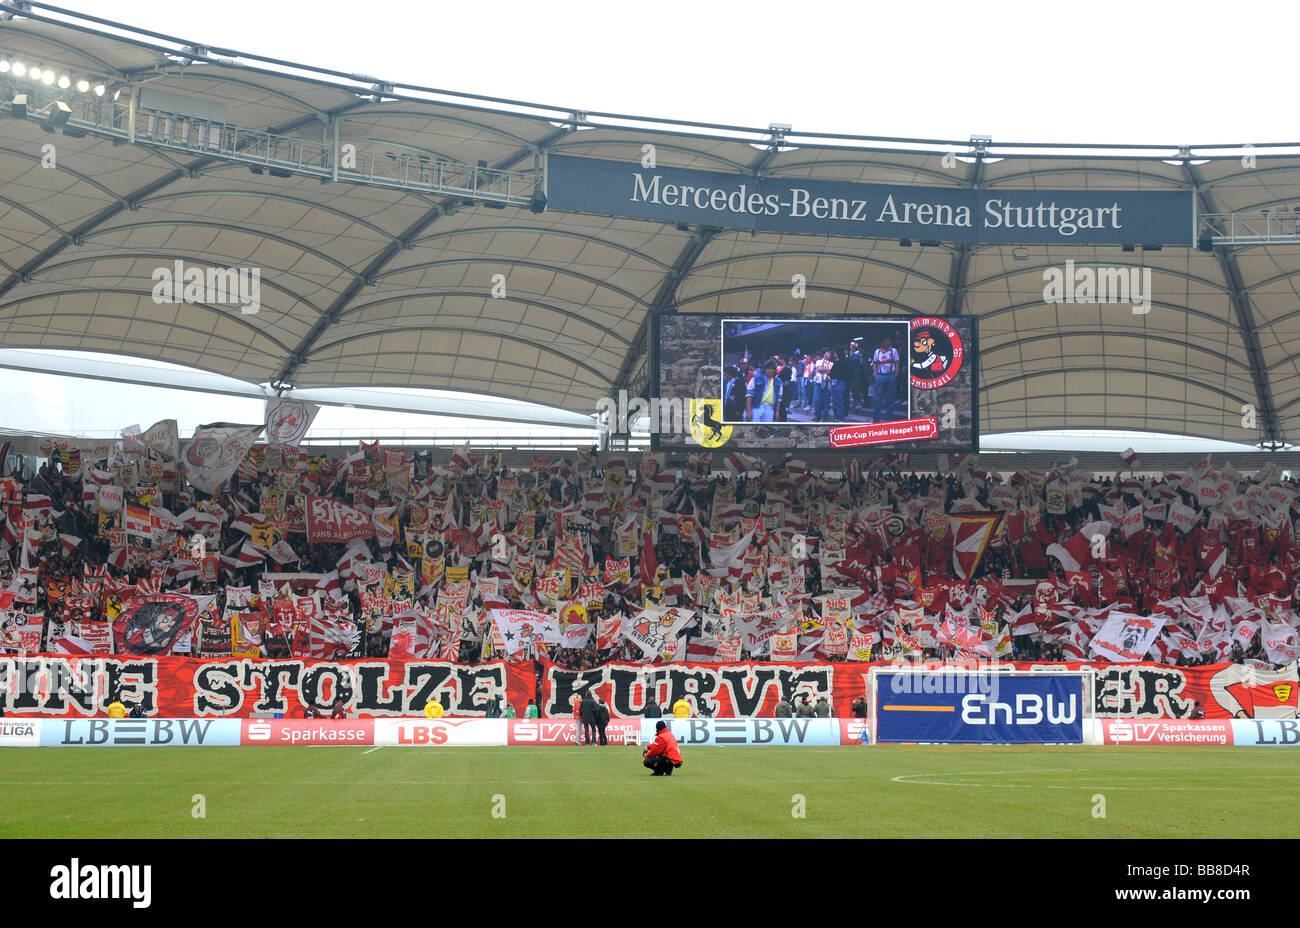 Sea of flags at the corner full of VfB Stuttgart fans, Mercedes-Benz Arena Stuttgart, Baden-Wuerttemberg, Germany, Stock Photo